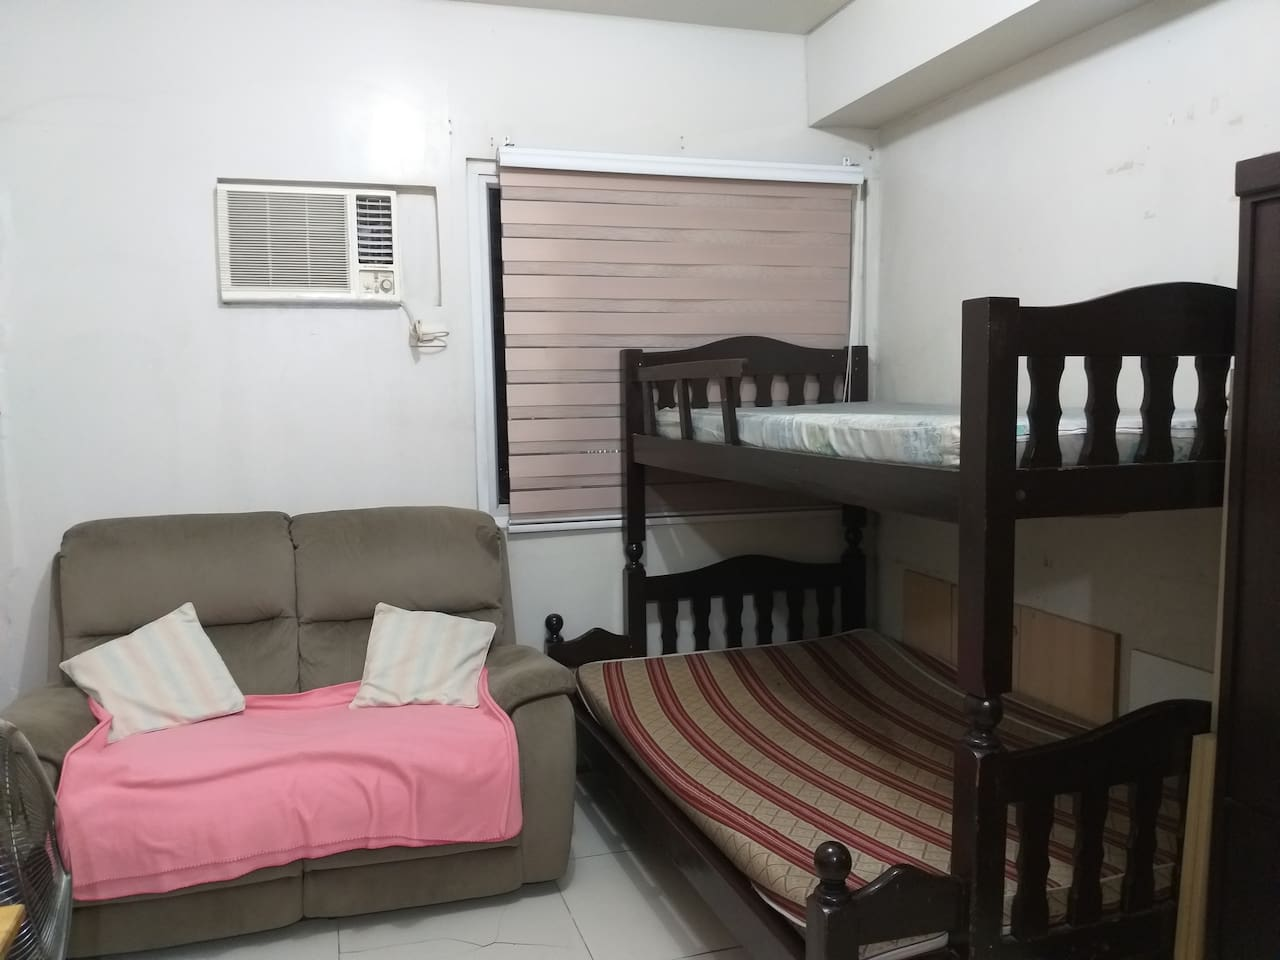 Double deck good for 3 persons... 2 seater lazy boy for extra comfort while watching TV